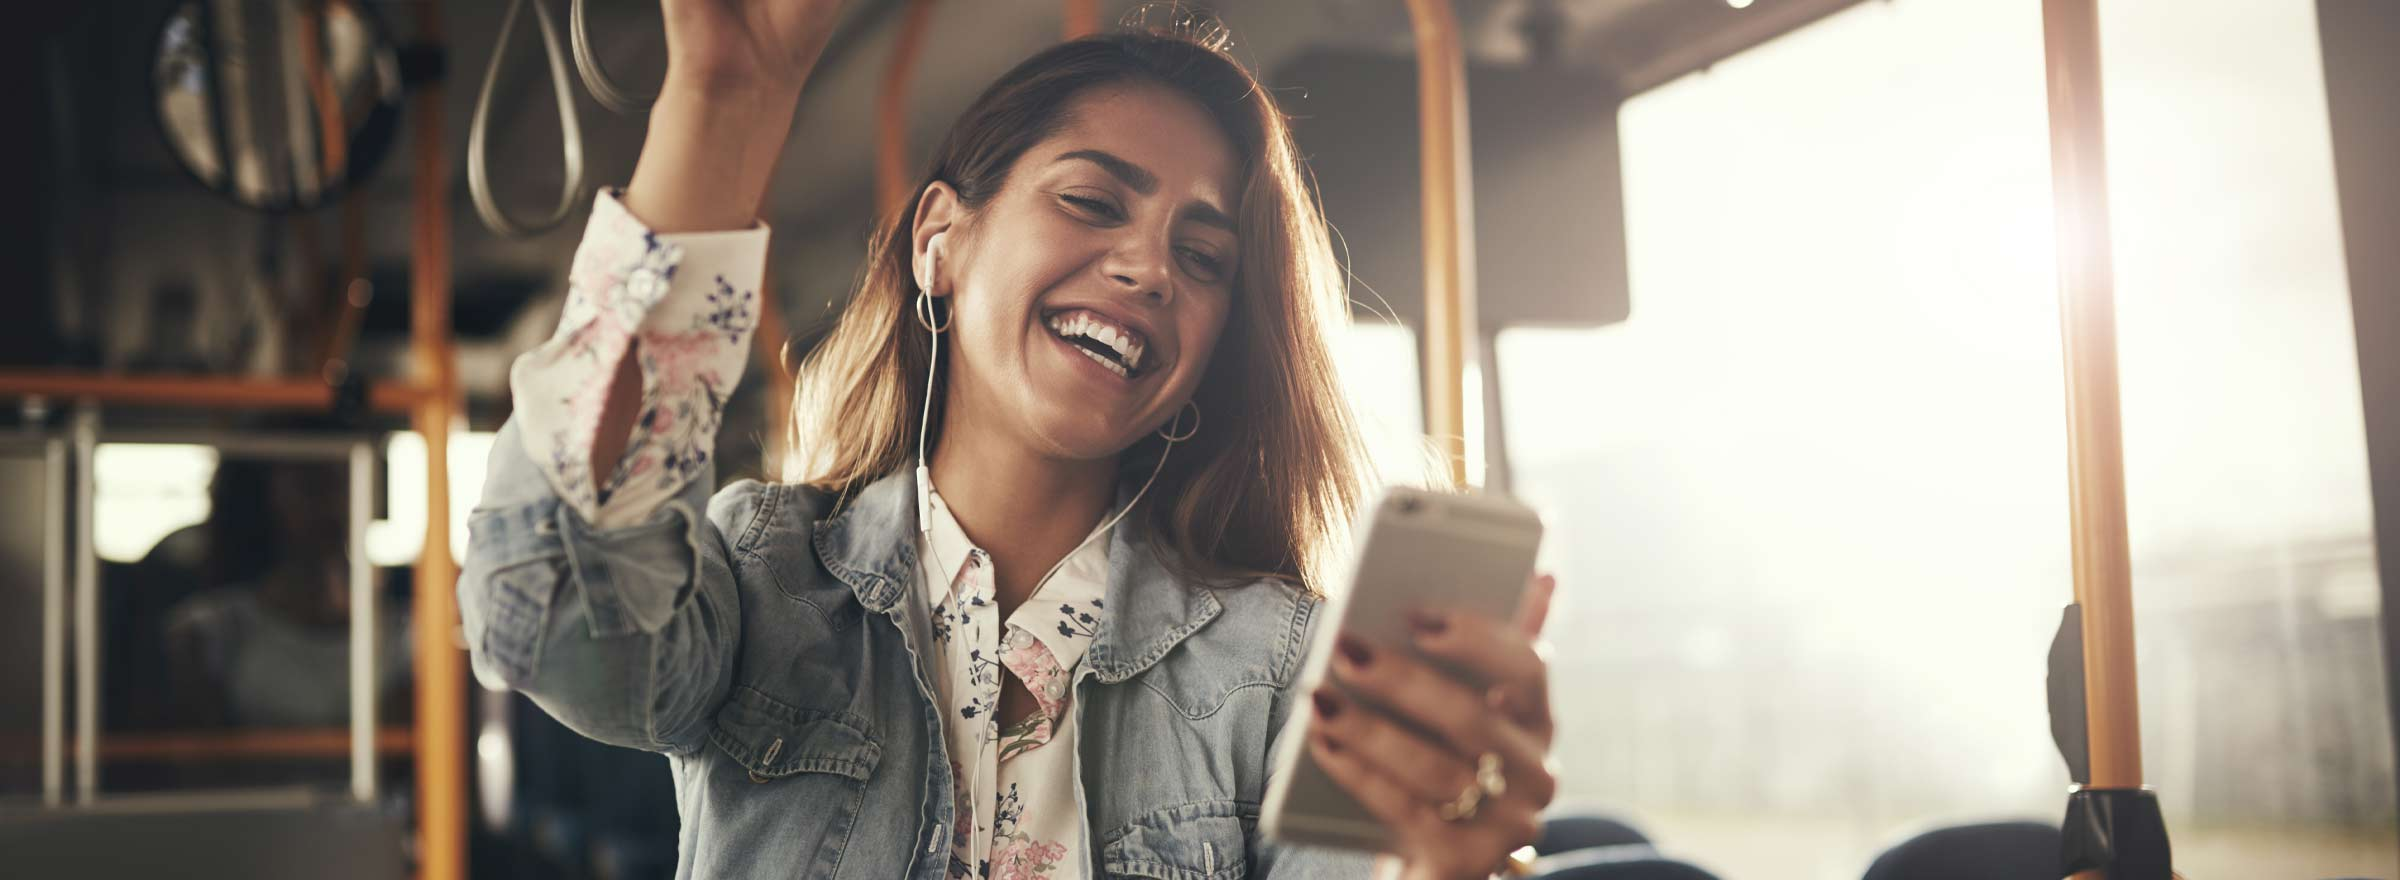 young woman standing on public transit looking at a smartphone and smiling